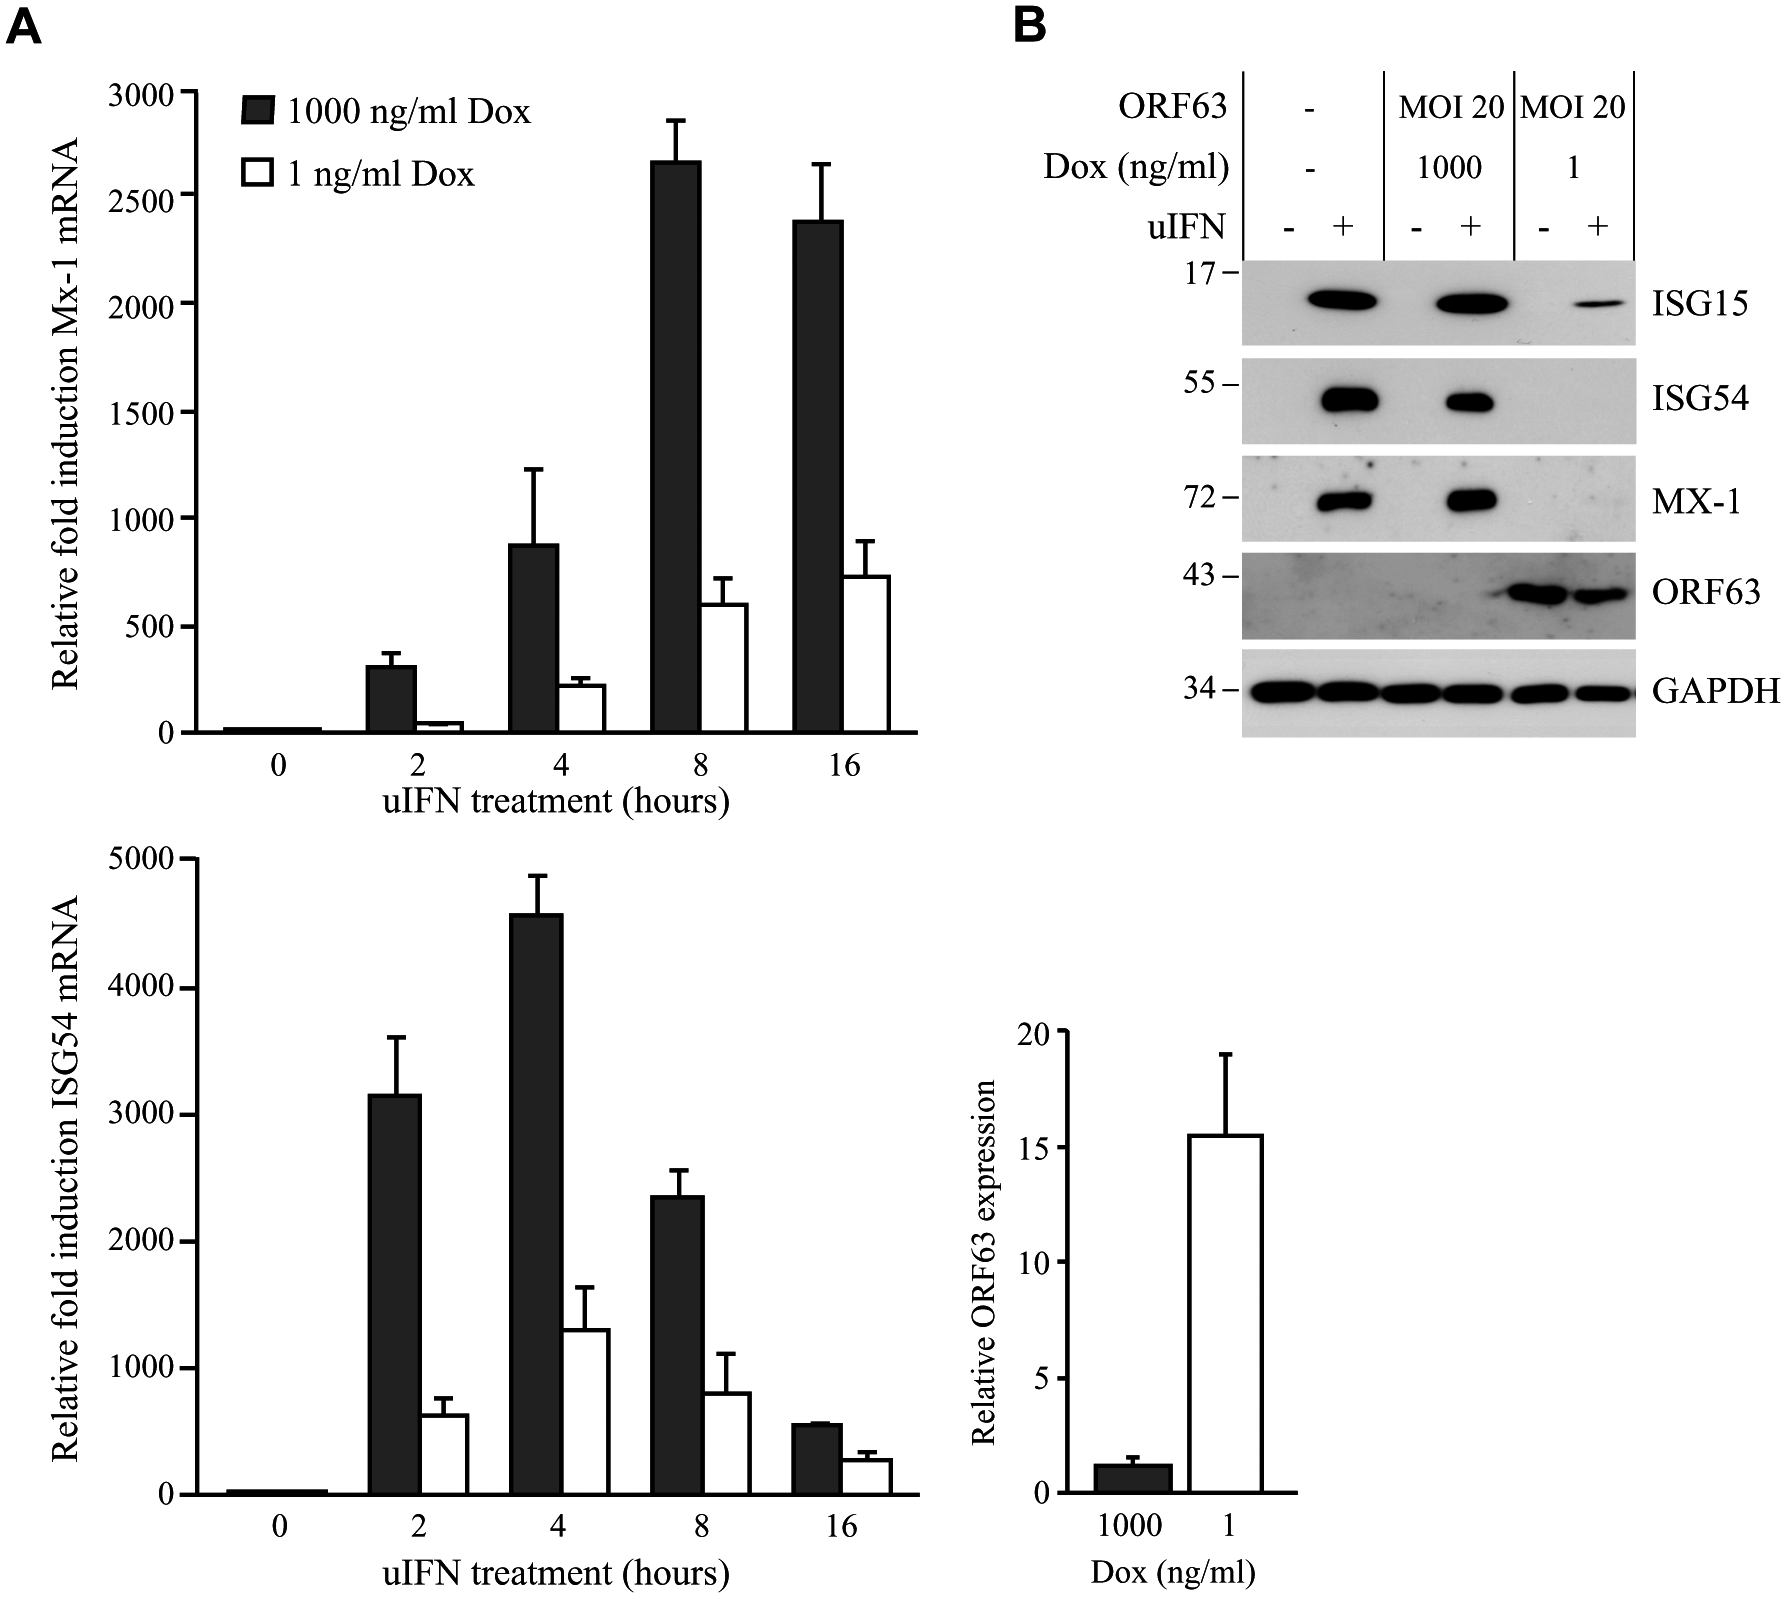 SVV ORF63 inhibits IFN-stimulated gene expression.